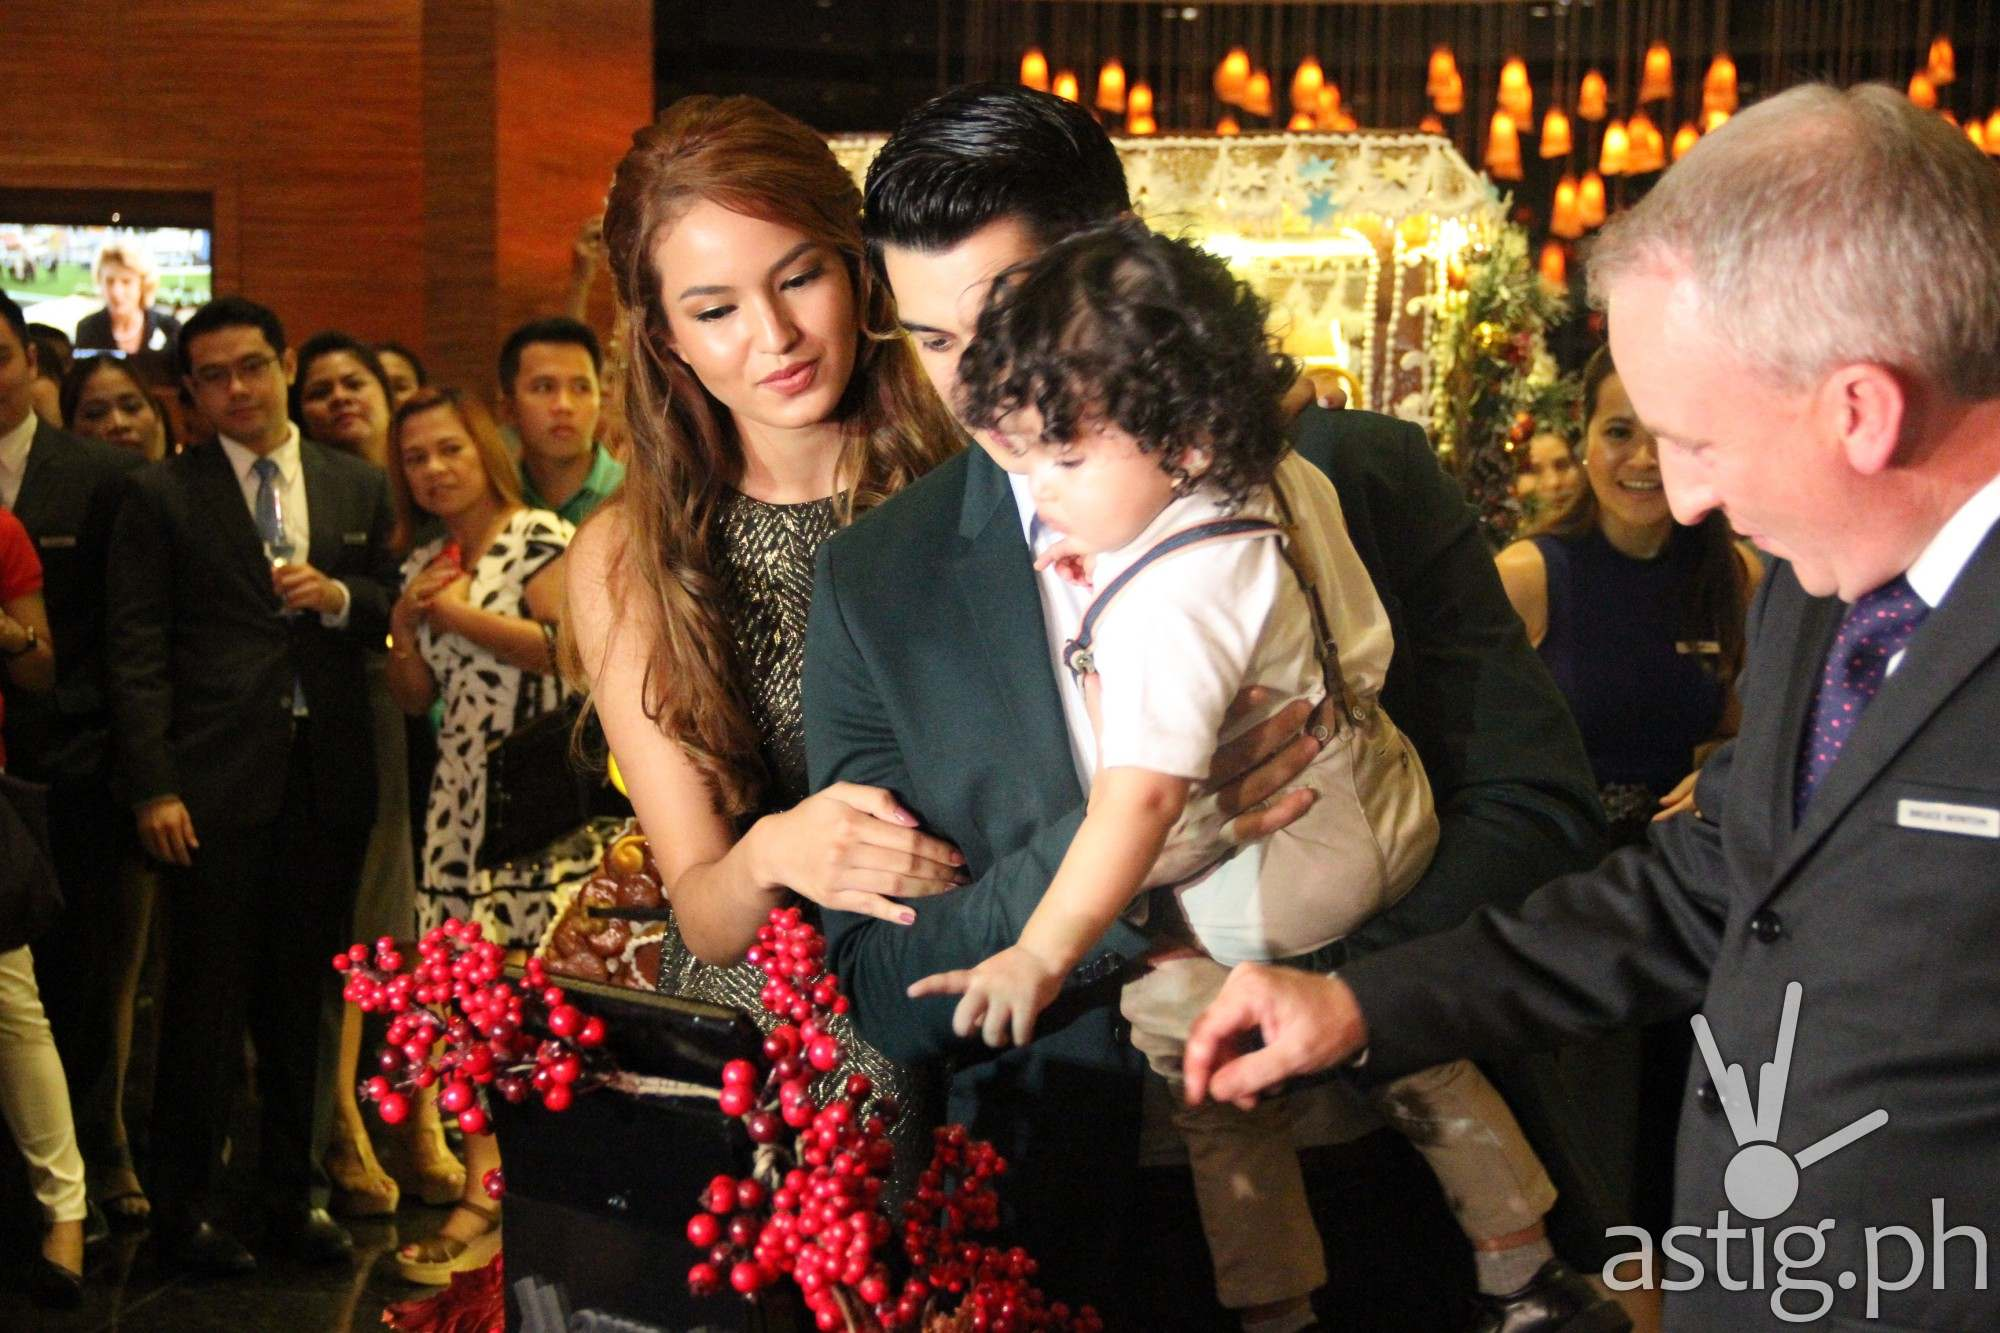 Richard Guterrez, Sarah Lahbati, and Baby Zion with Marriott Manila's General Manager Bruce Winton